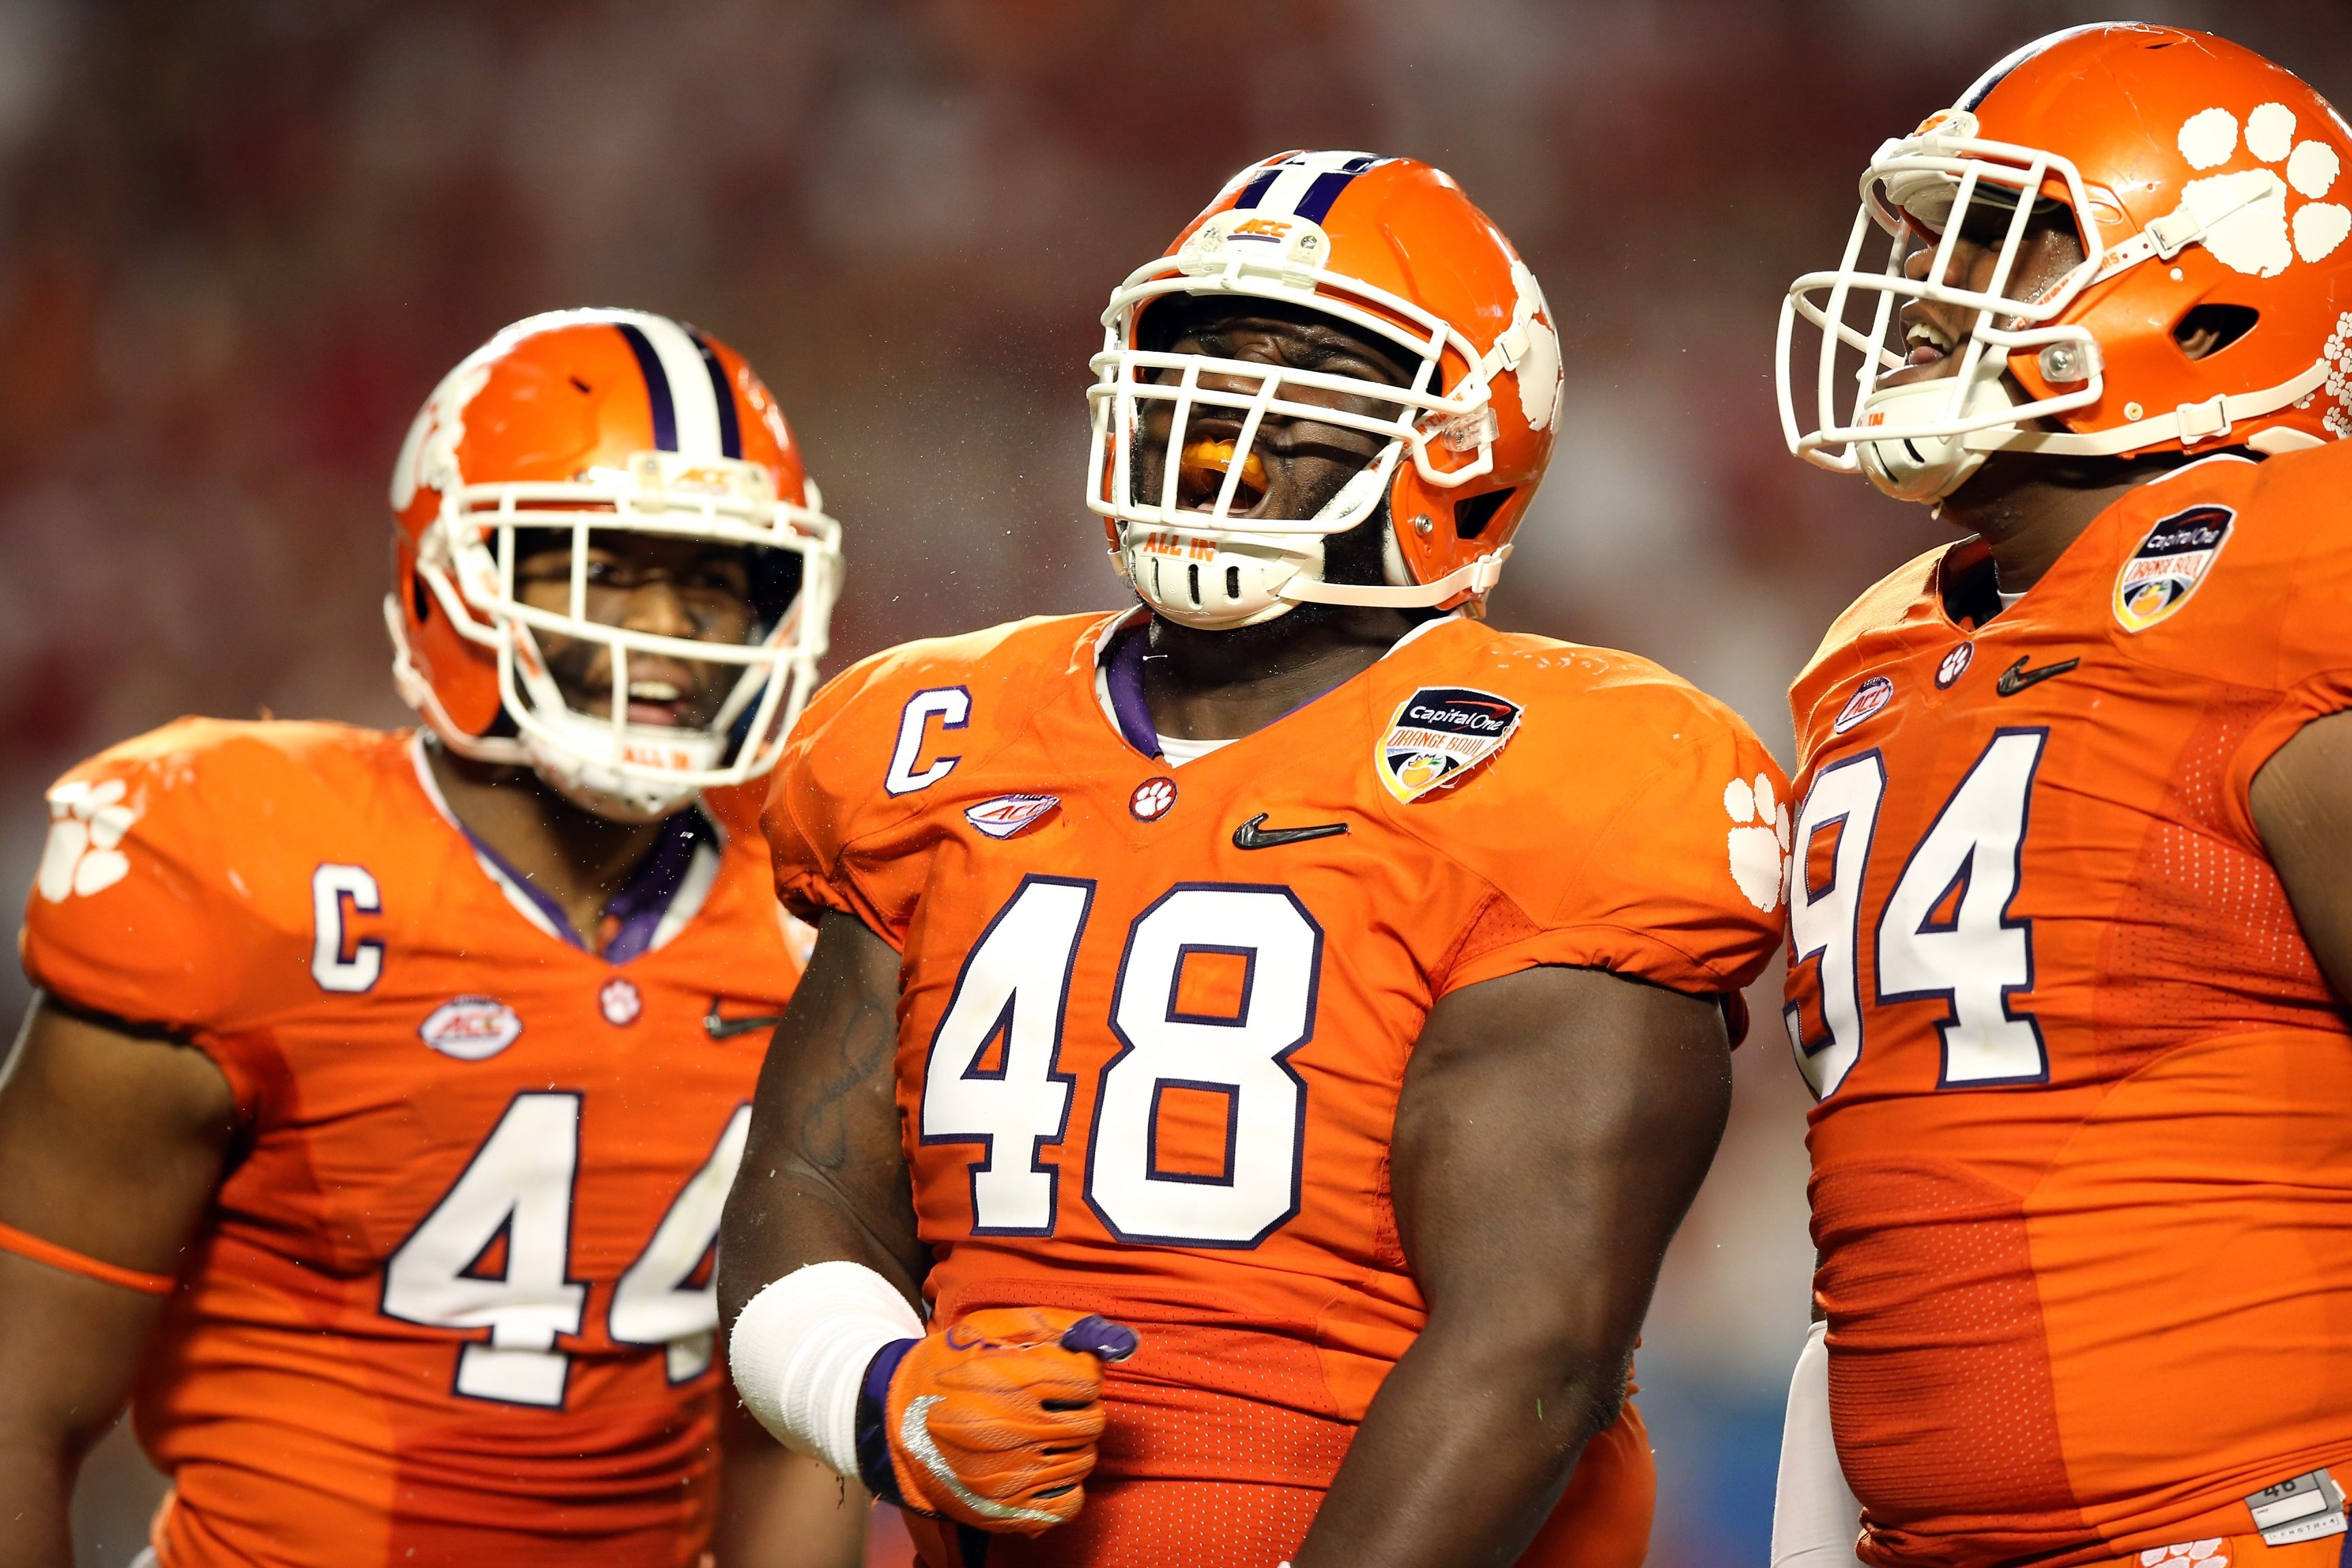 Nose tackle D.J. Reader (48) of the Clemson Tigers is a projected fifth-sixth round pick who had a good showing at the Senior Bowl week where he consistently won one-on-one battles with offensive linemen.